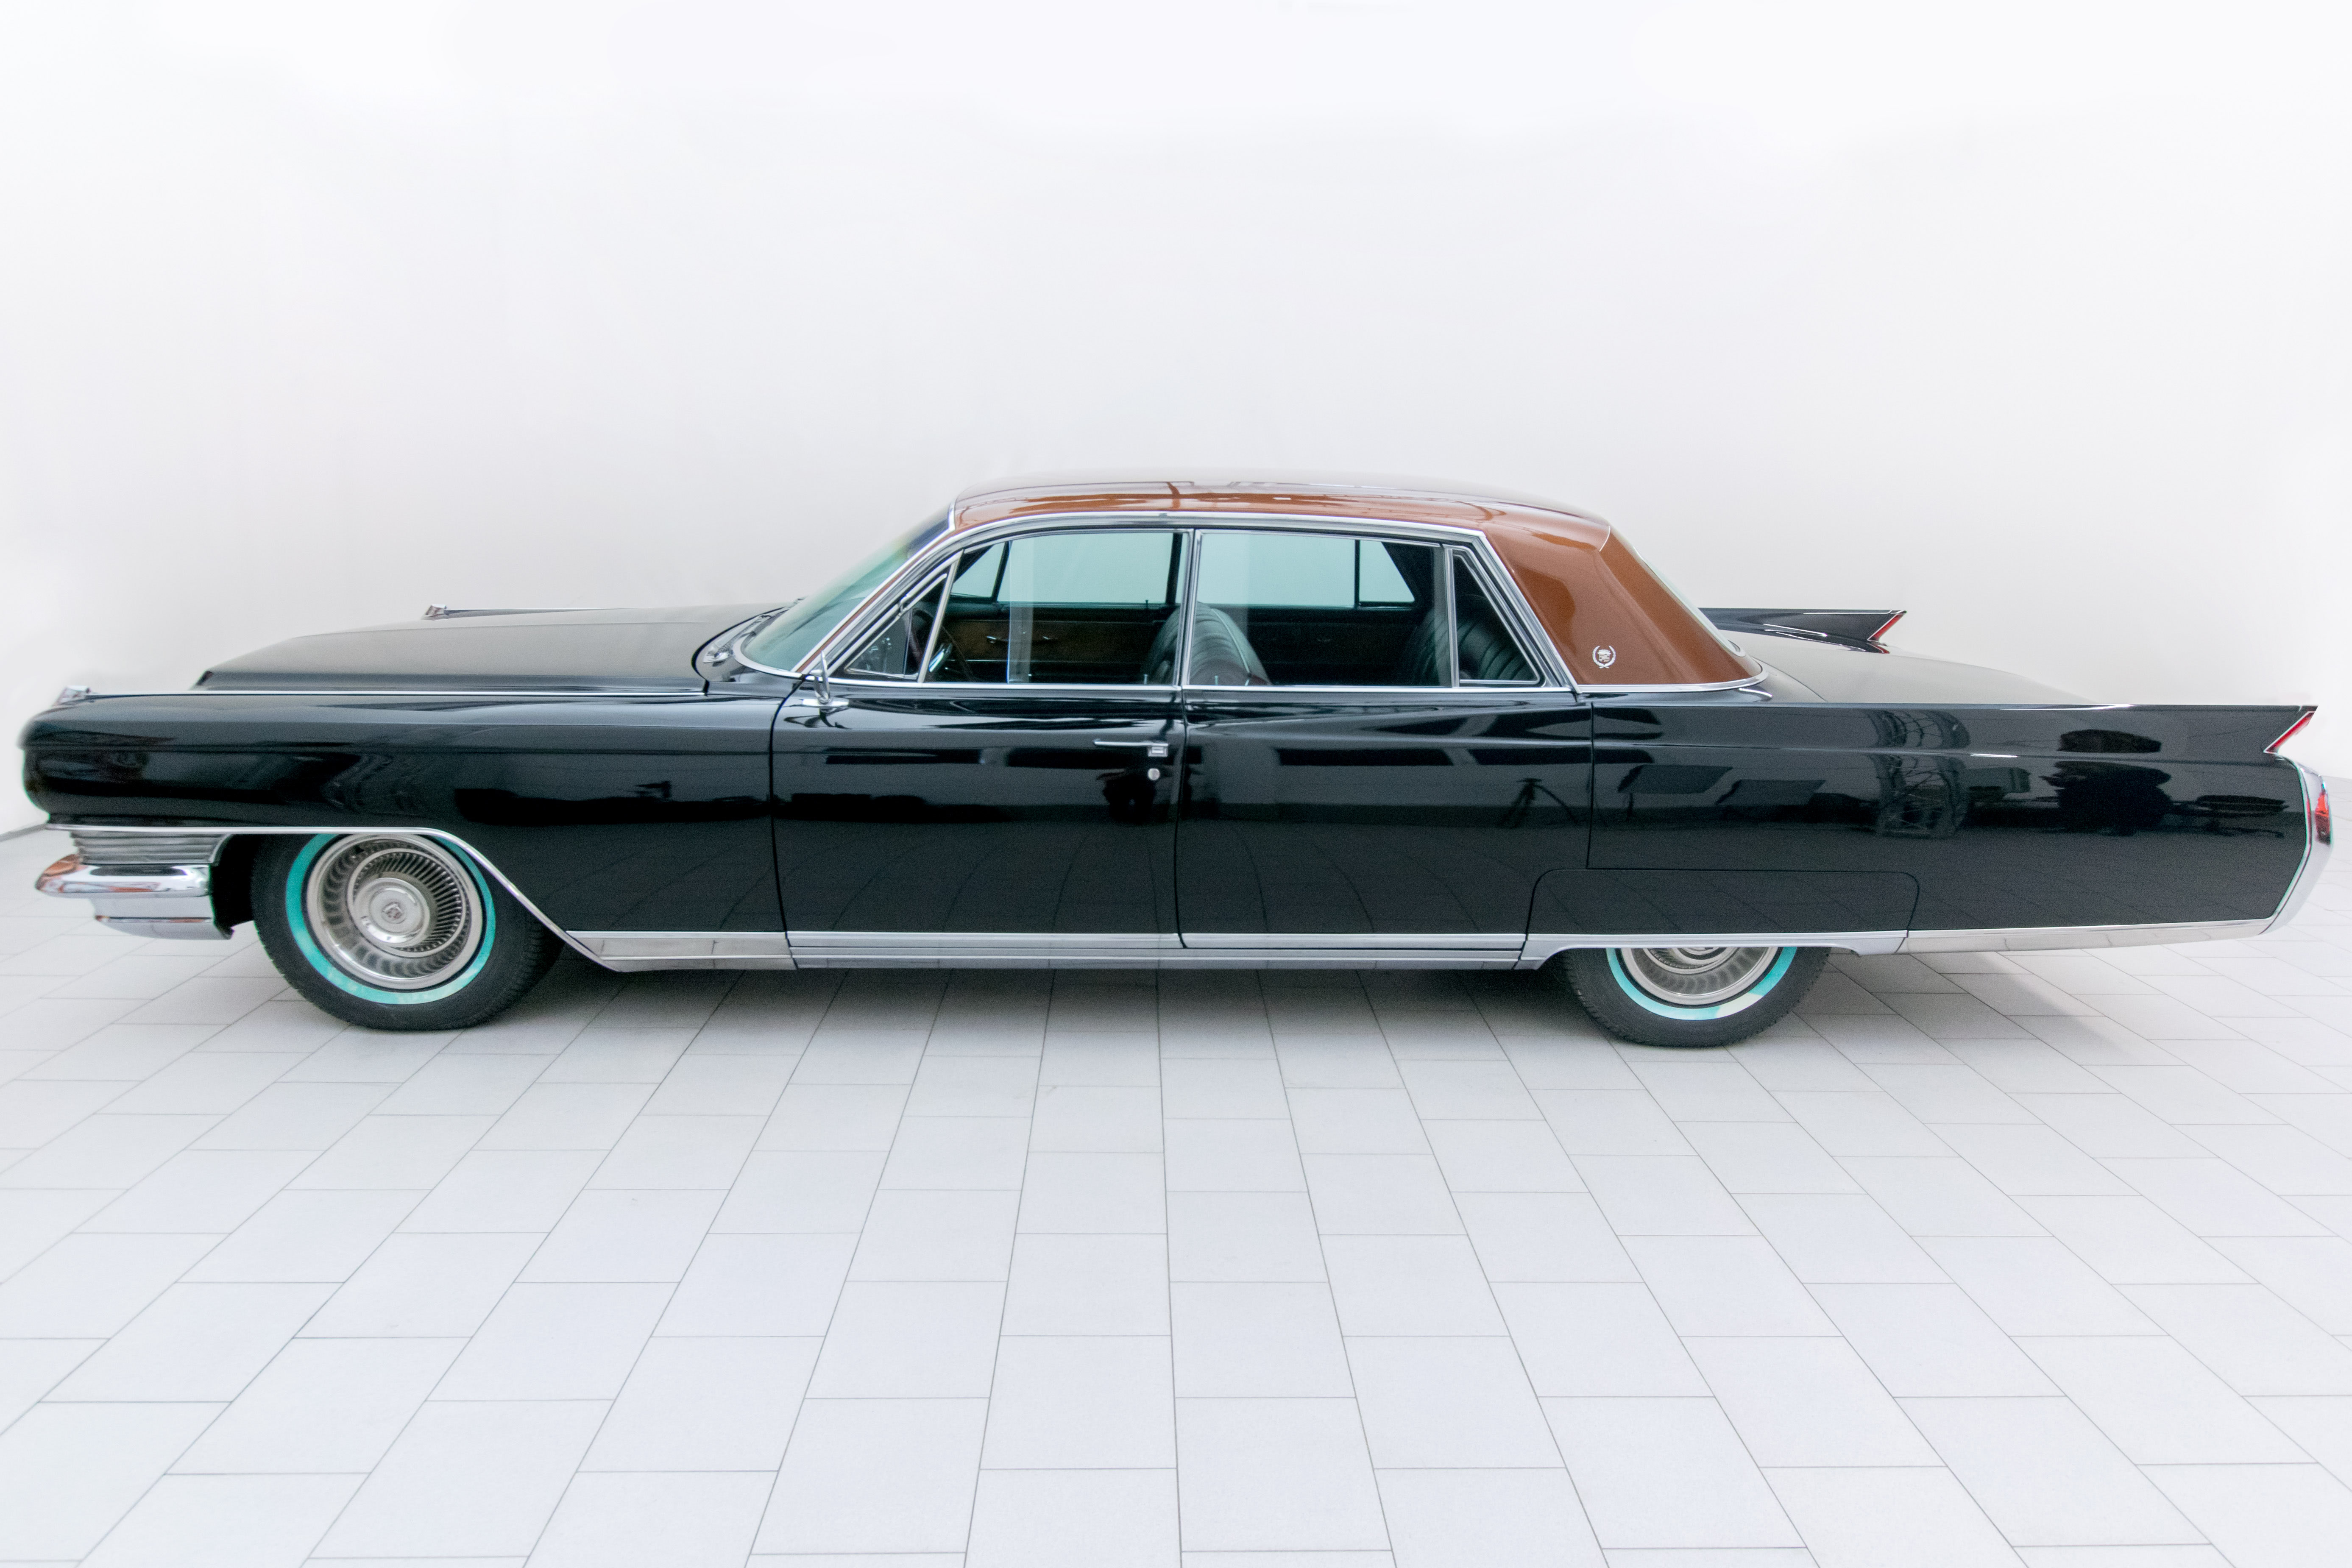 pin fleetwood cadillac sedans grand old caddy for sale and